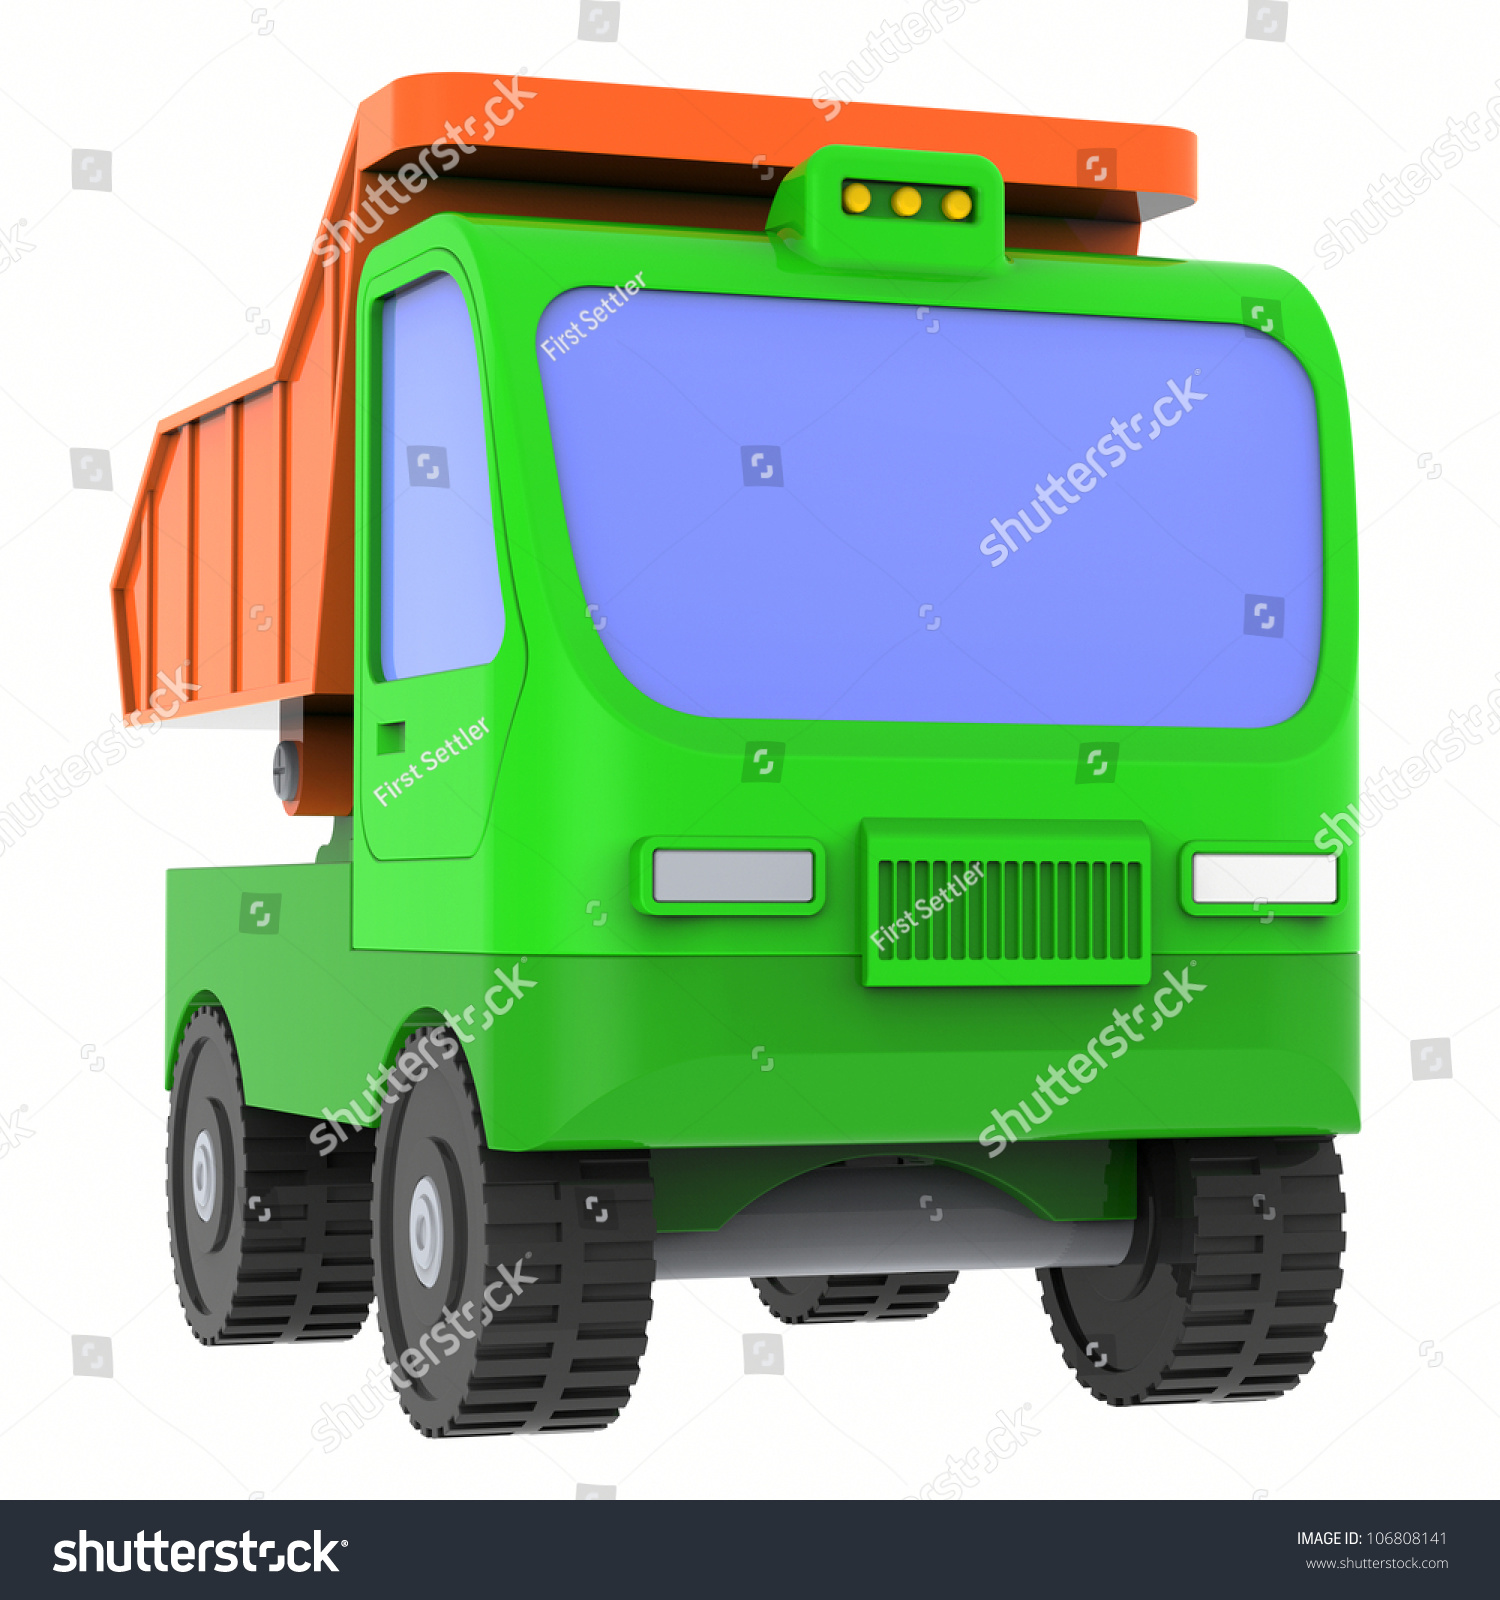 Green Toy Truck : Green toy truck isolated on white background abstract d